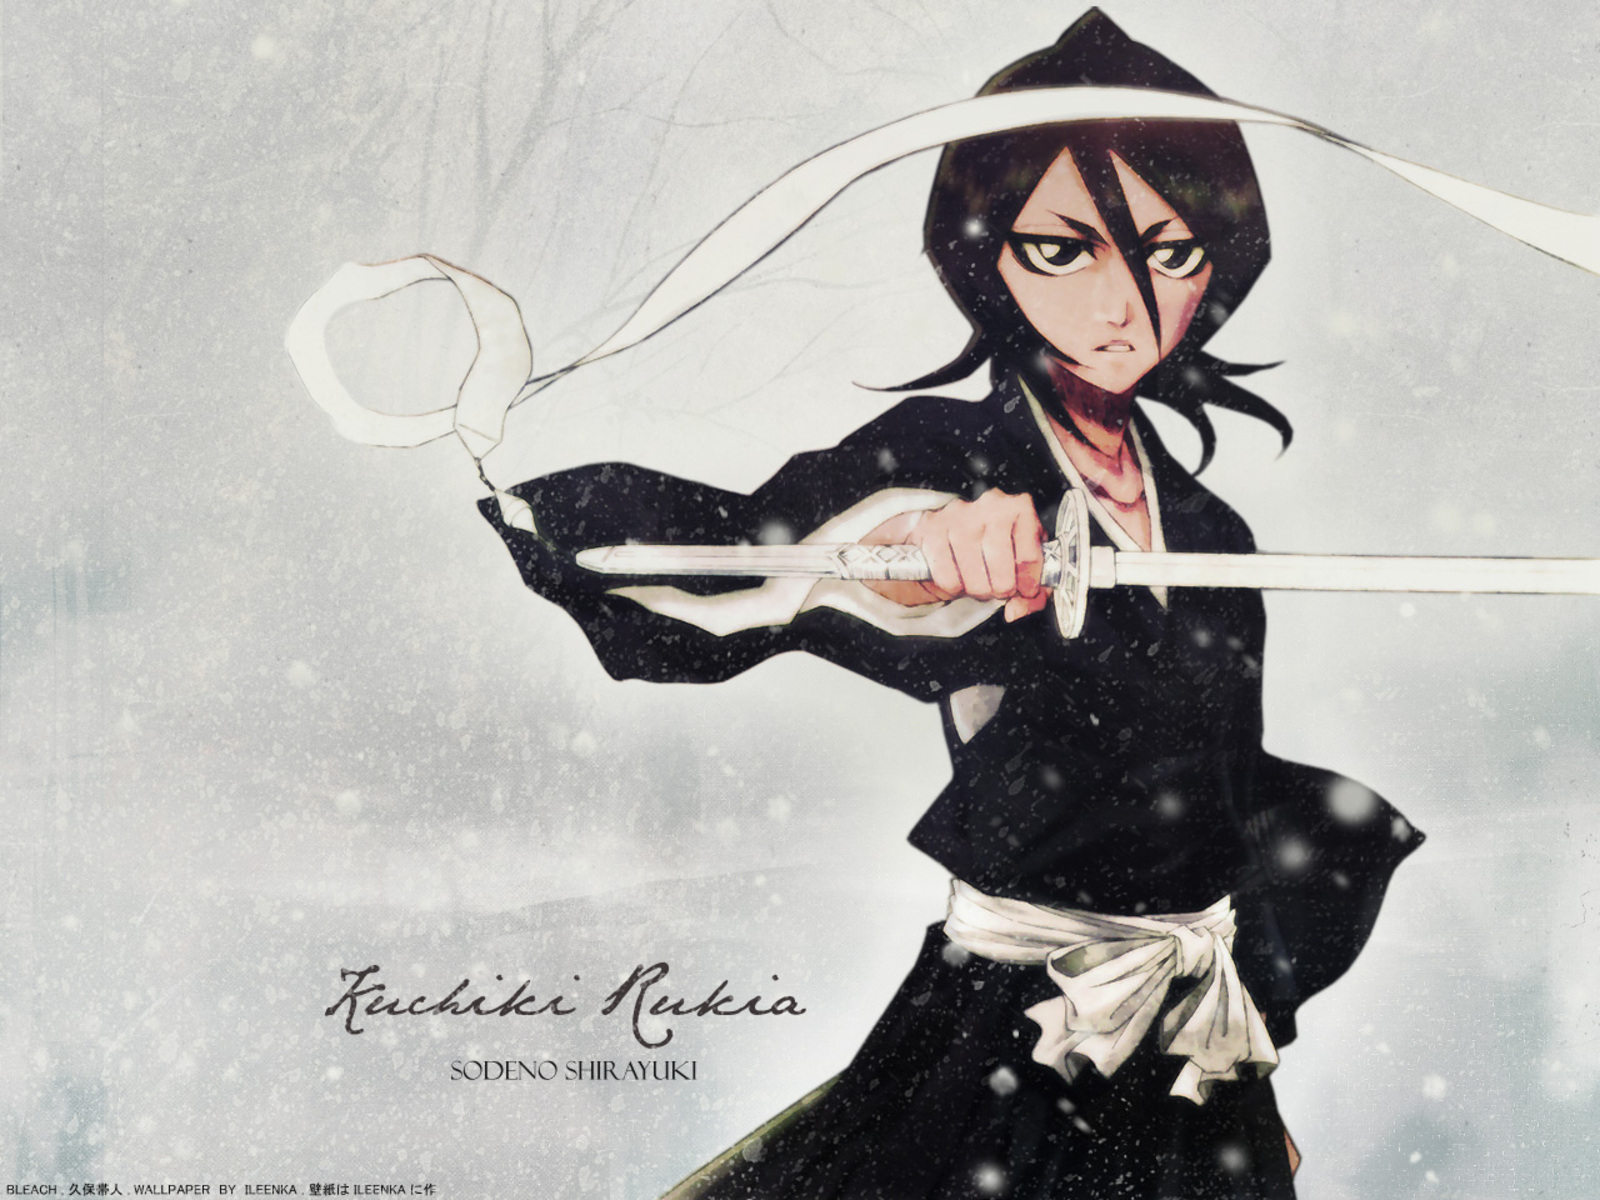 bleach Kuchiki rukia zanpakuto HD Wallpaper